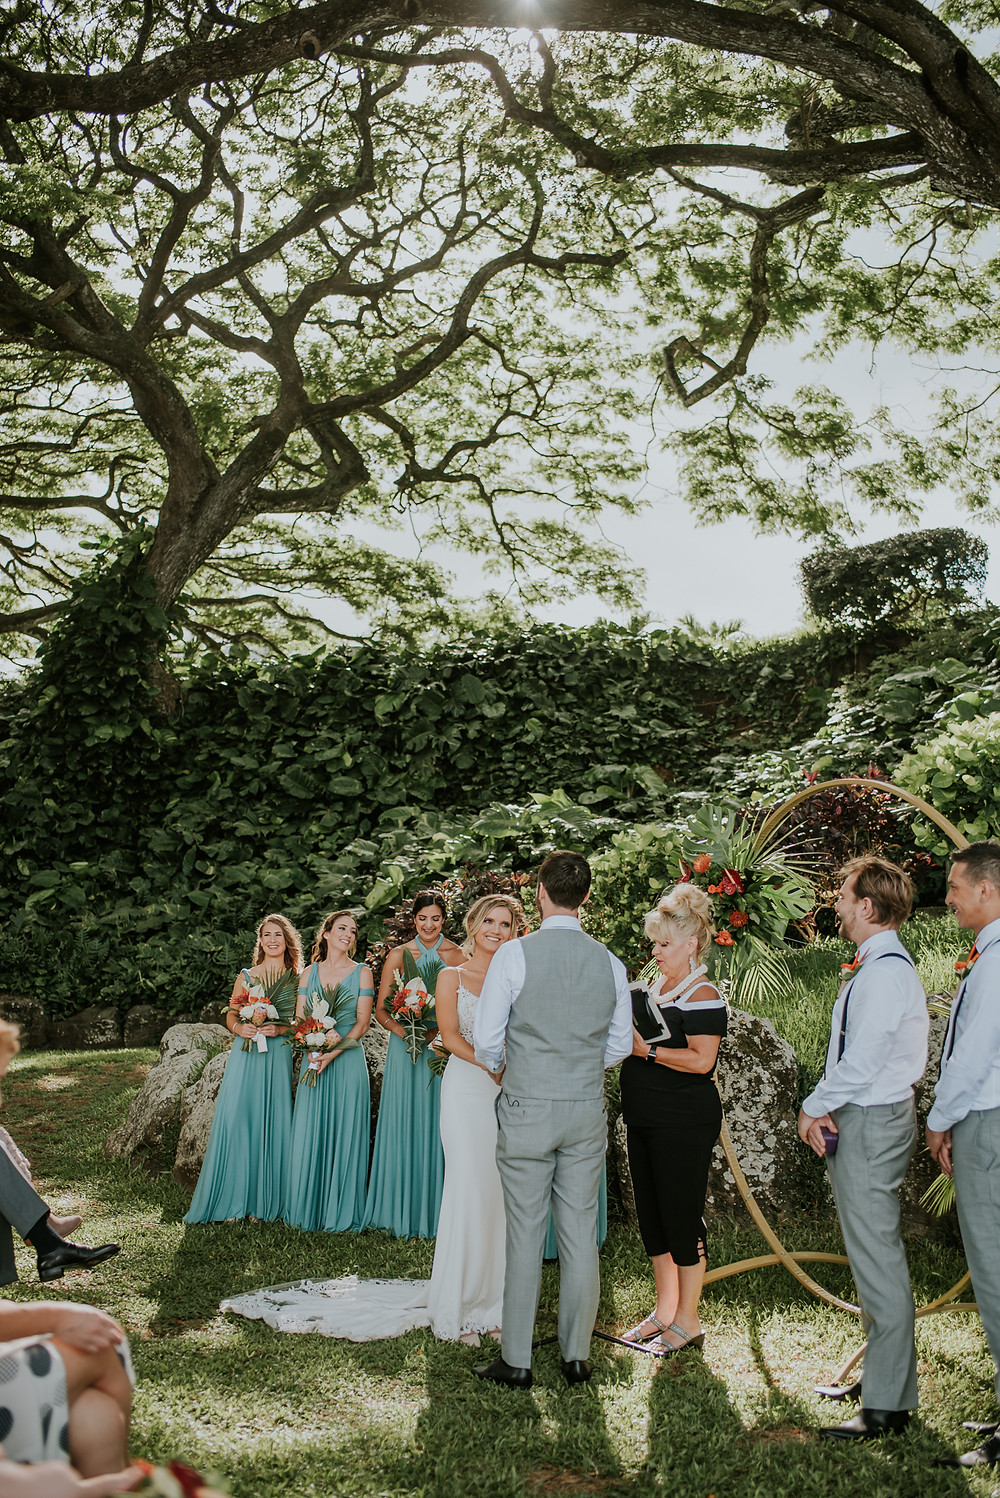 moil's garden kualoa ranch wedding